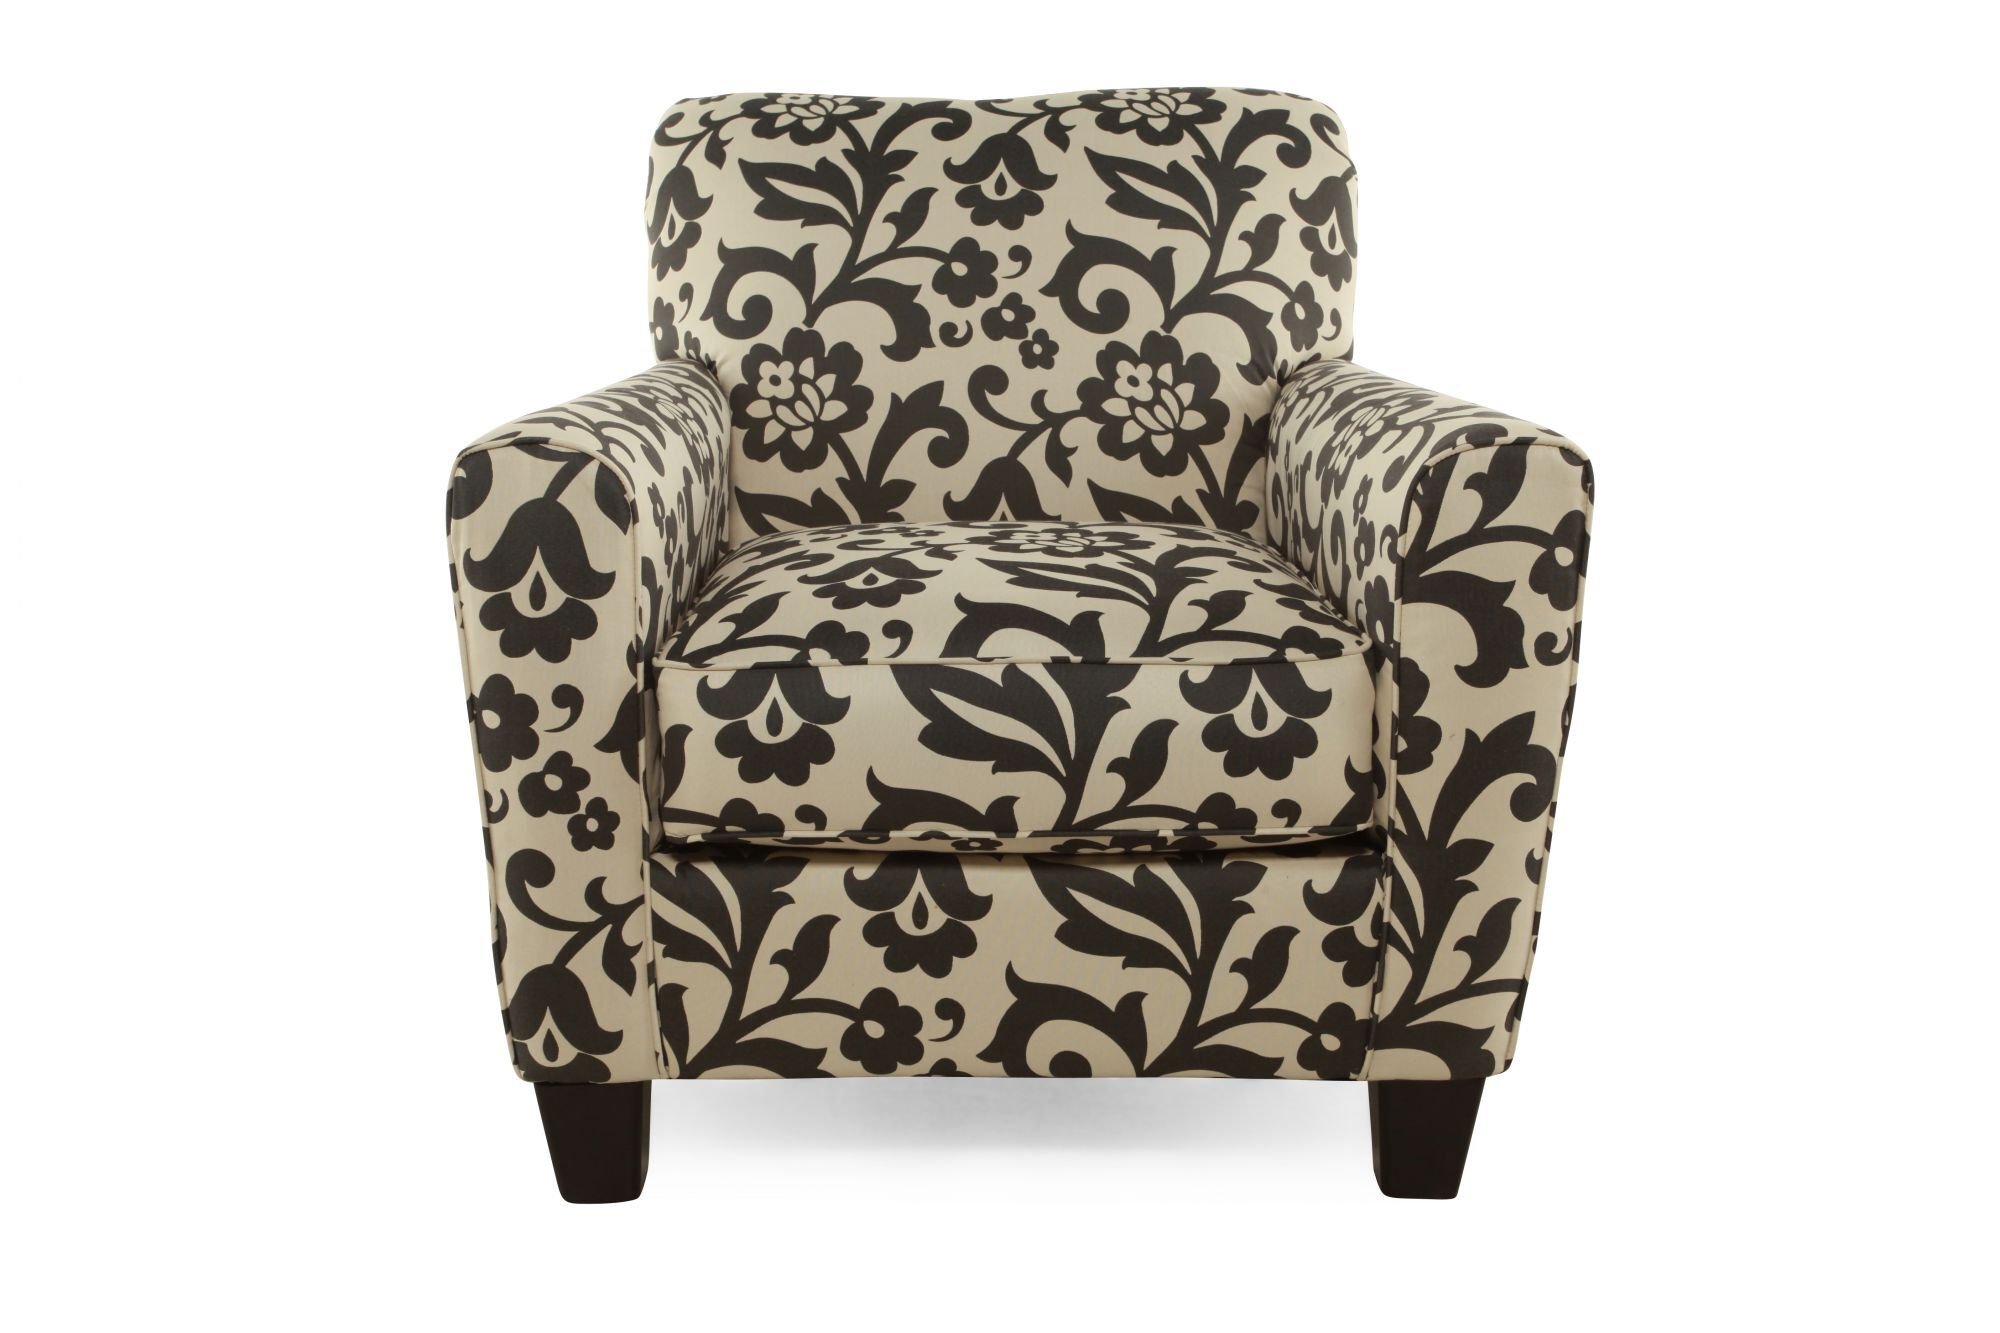 Printed Chair Floral Printed Contemporary 35 Quot Accent Chair In Cream